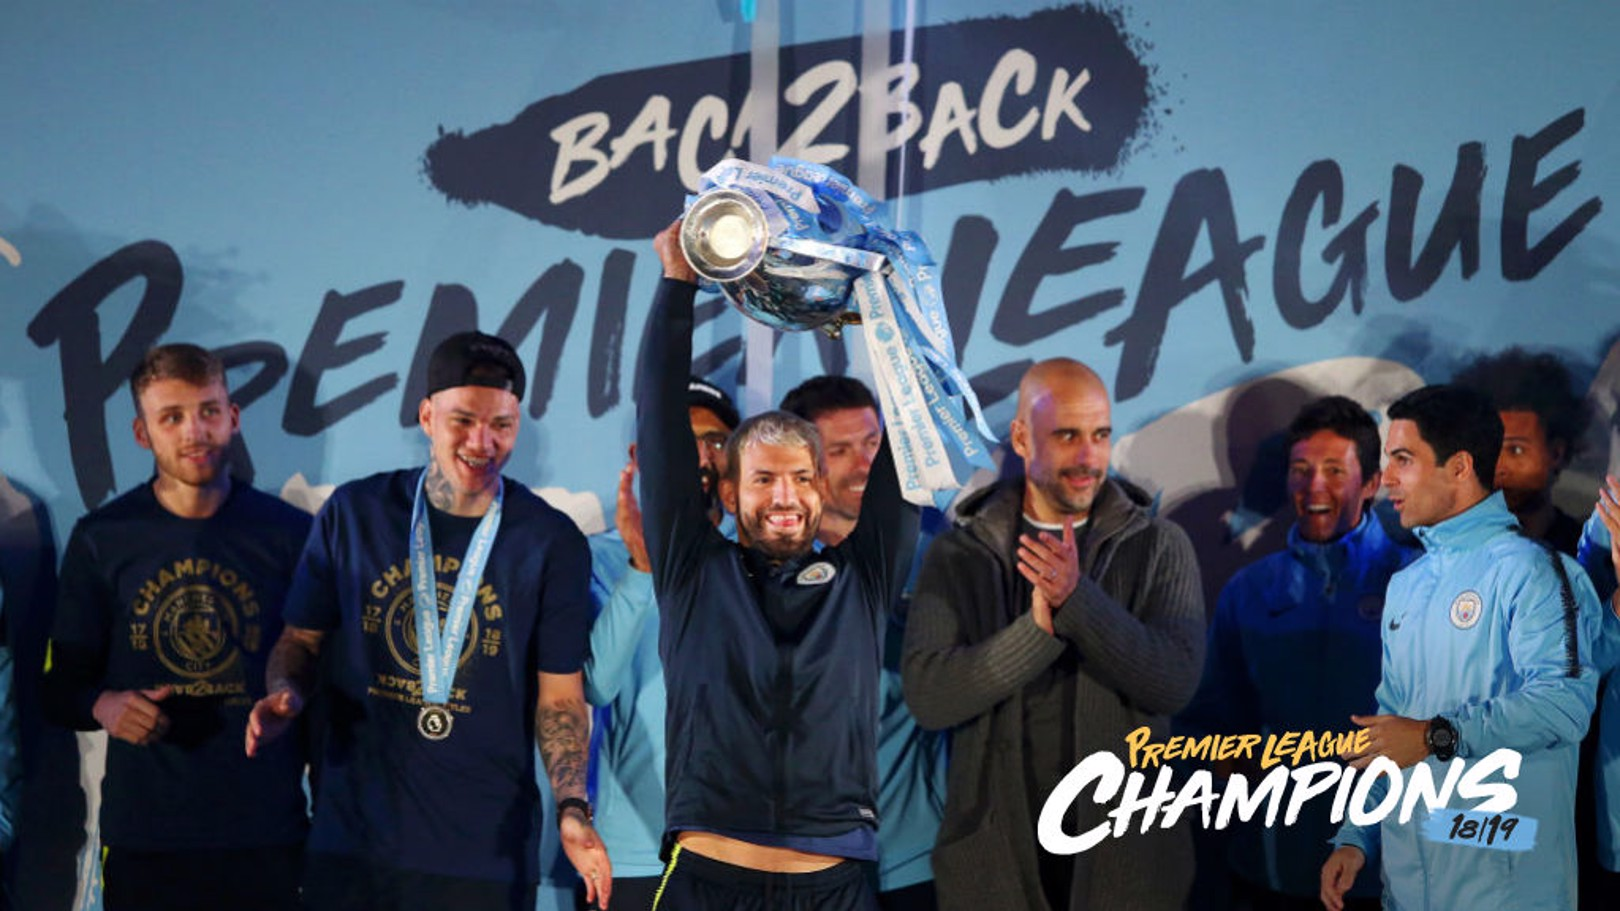 CHAMPIONS: City's dominance in this season's Premier League underlined by stats